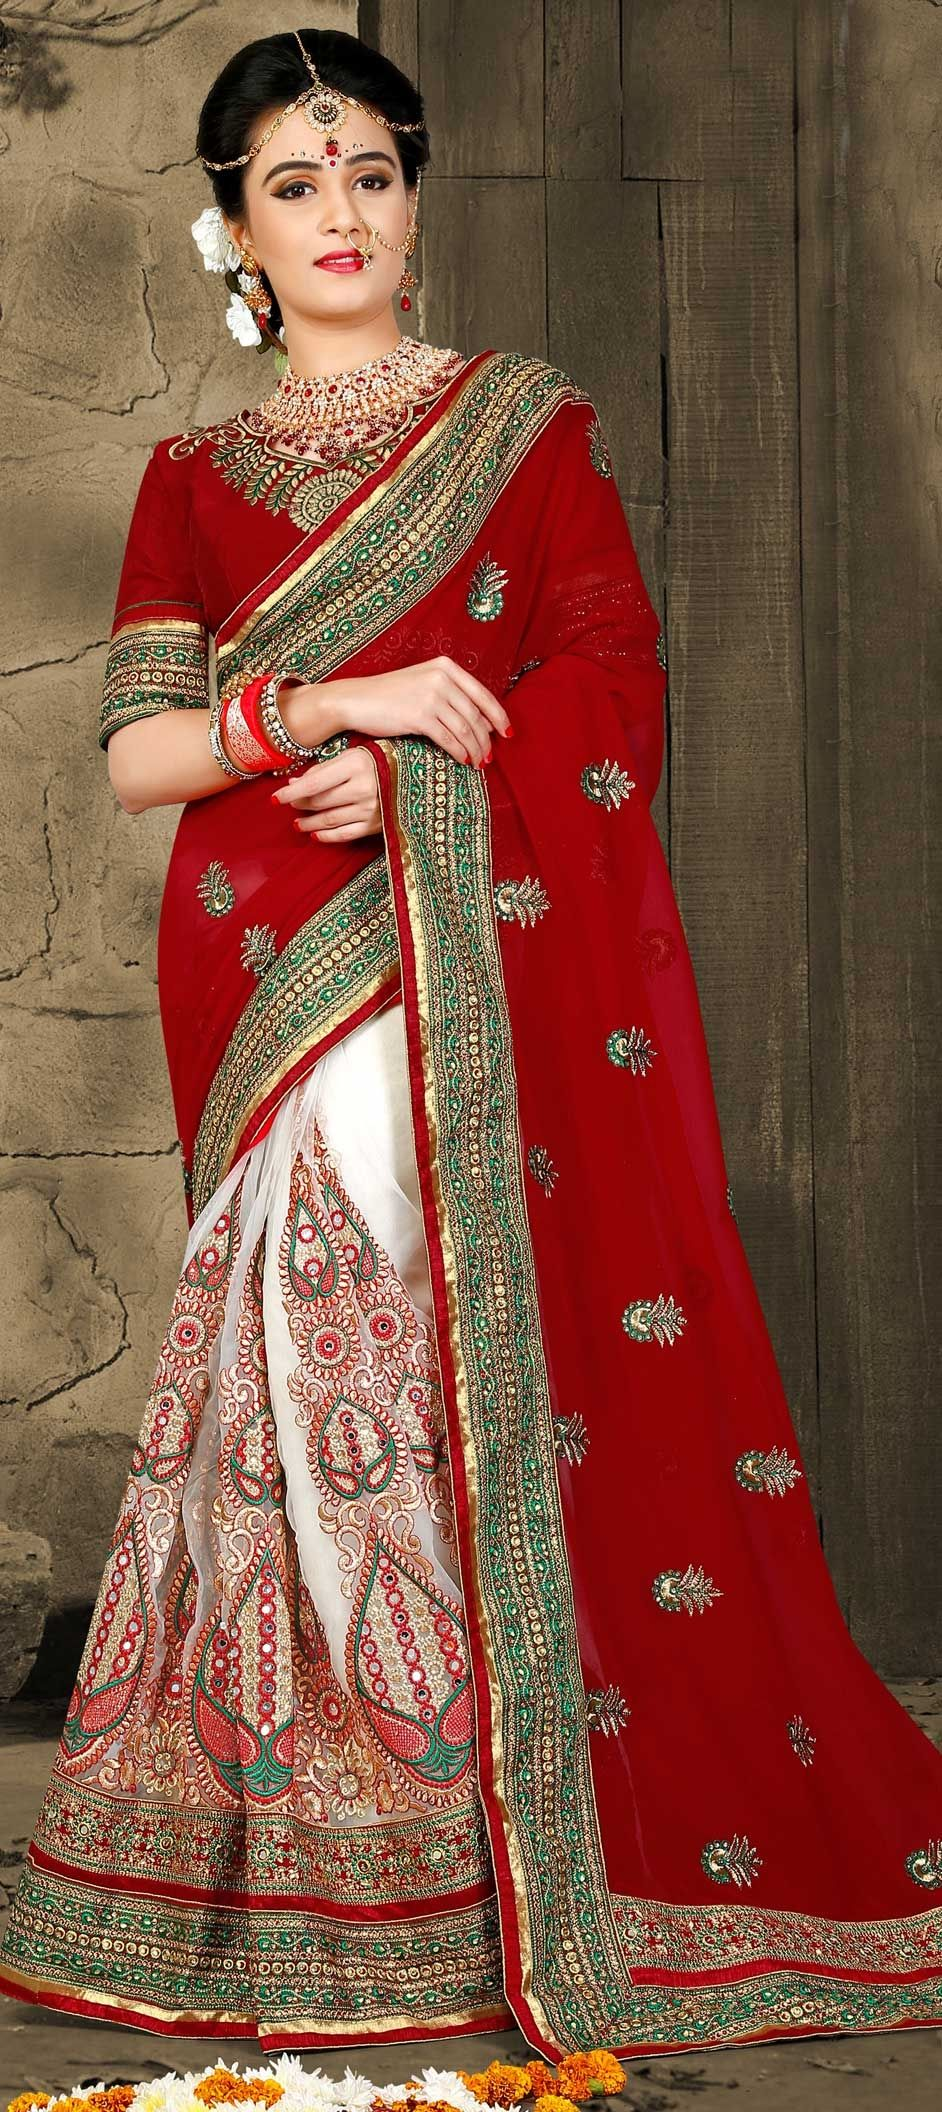 485b45043a5f 767538: Red and Maroon, White and Off White color family Bridal ...